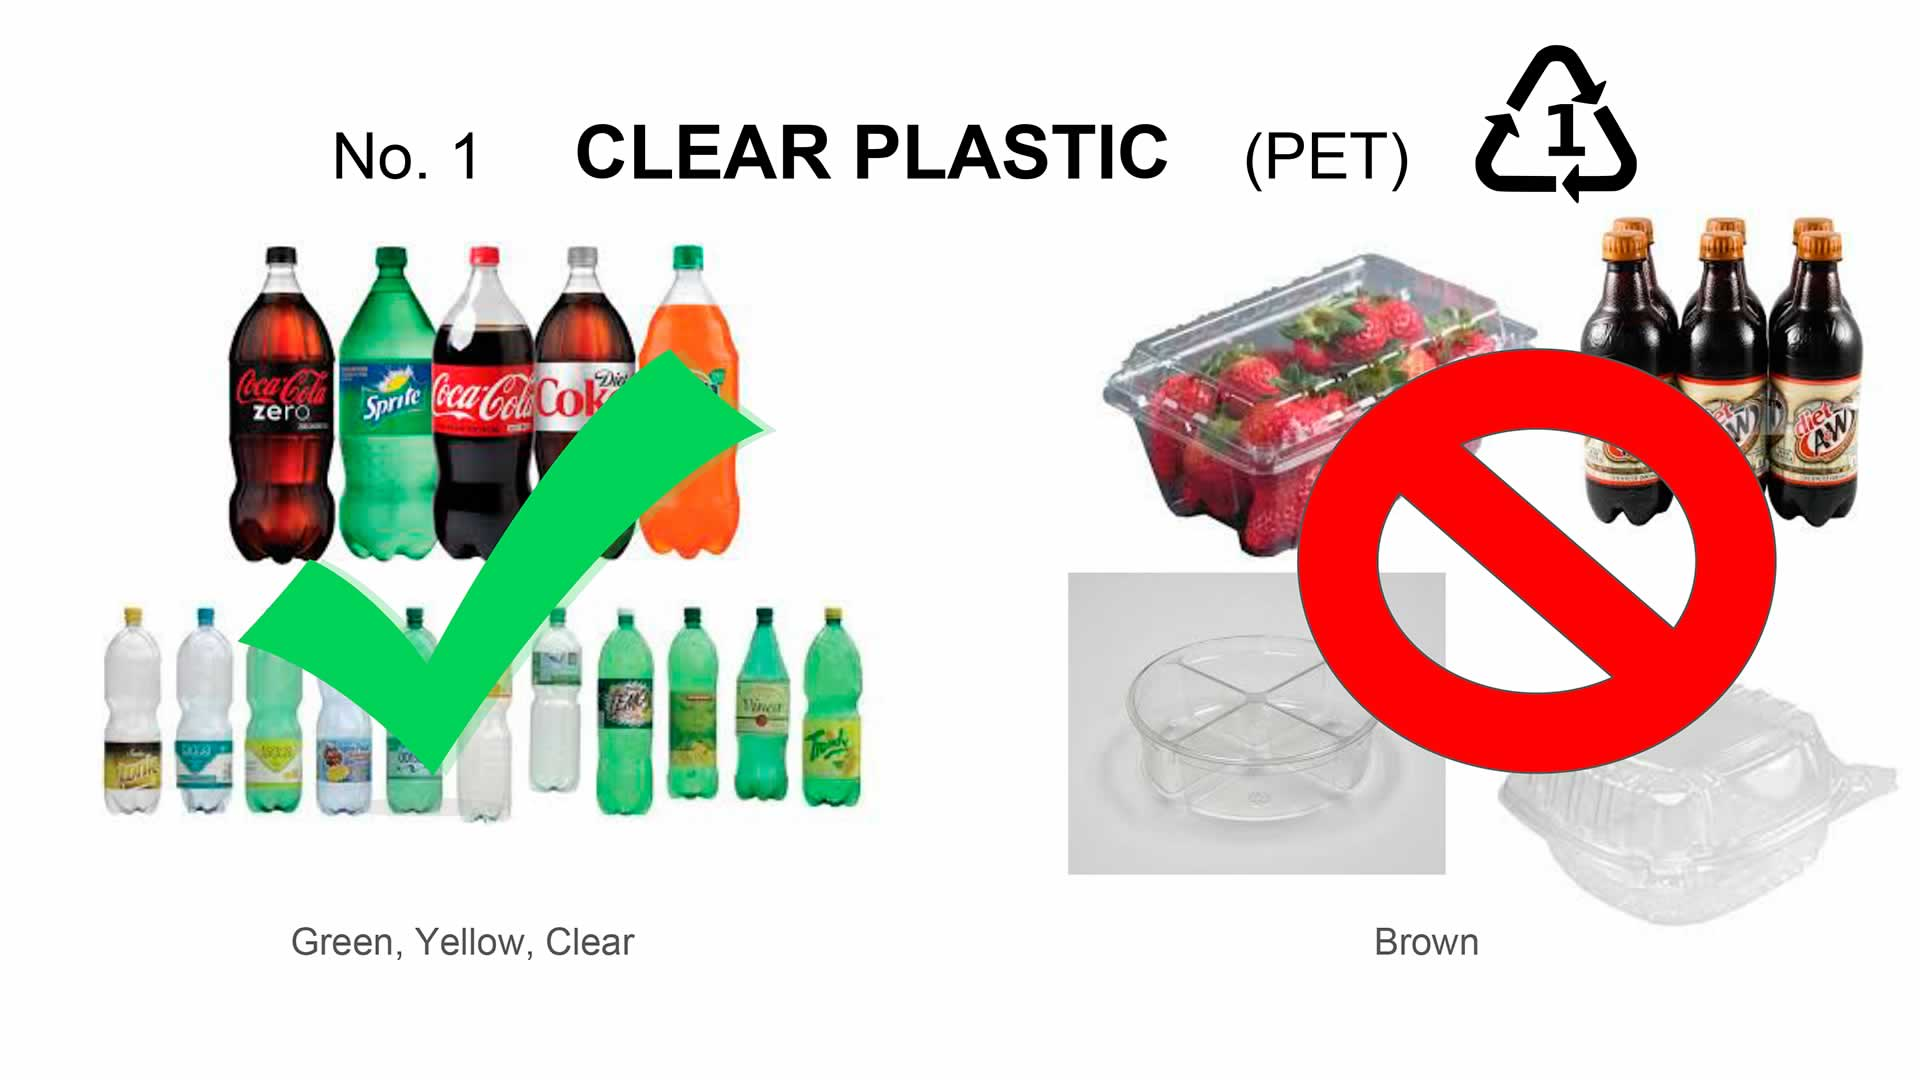 No. 1 Clear Plastic PET